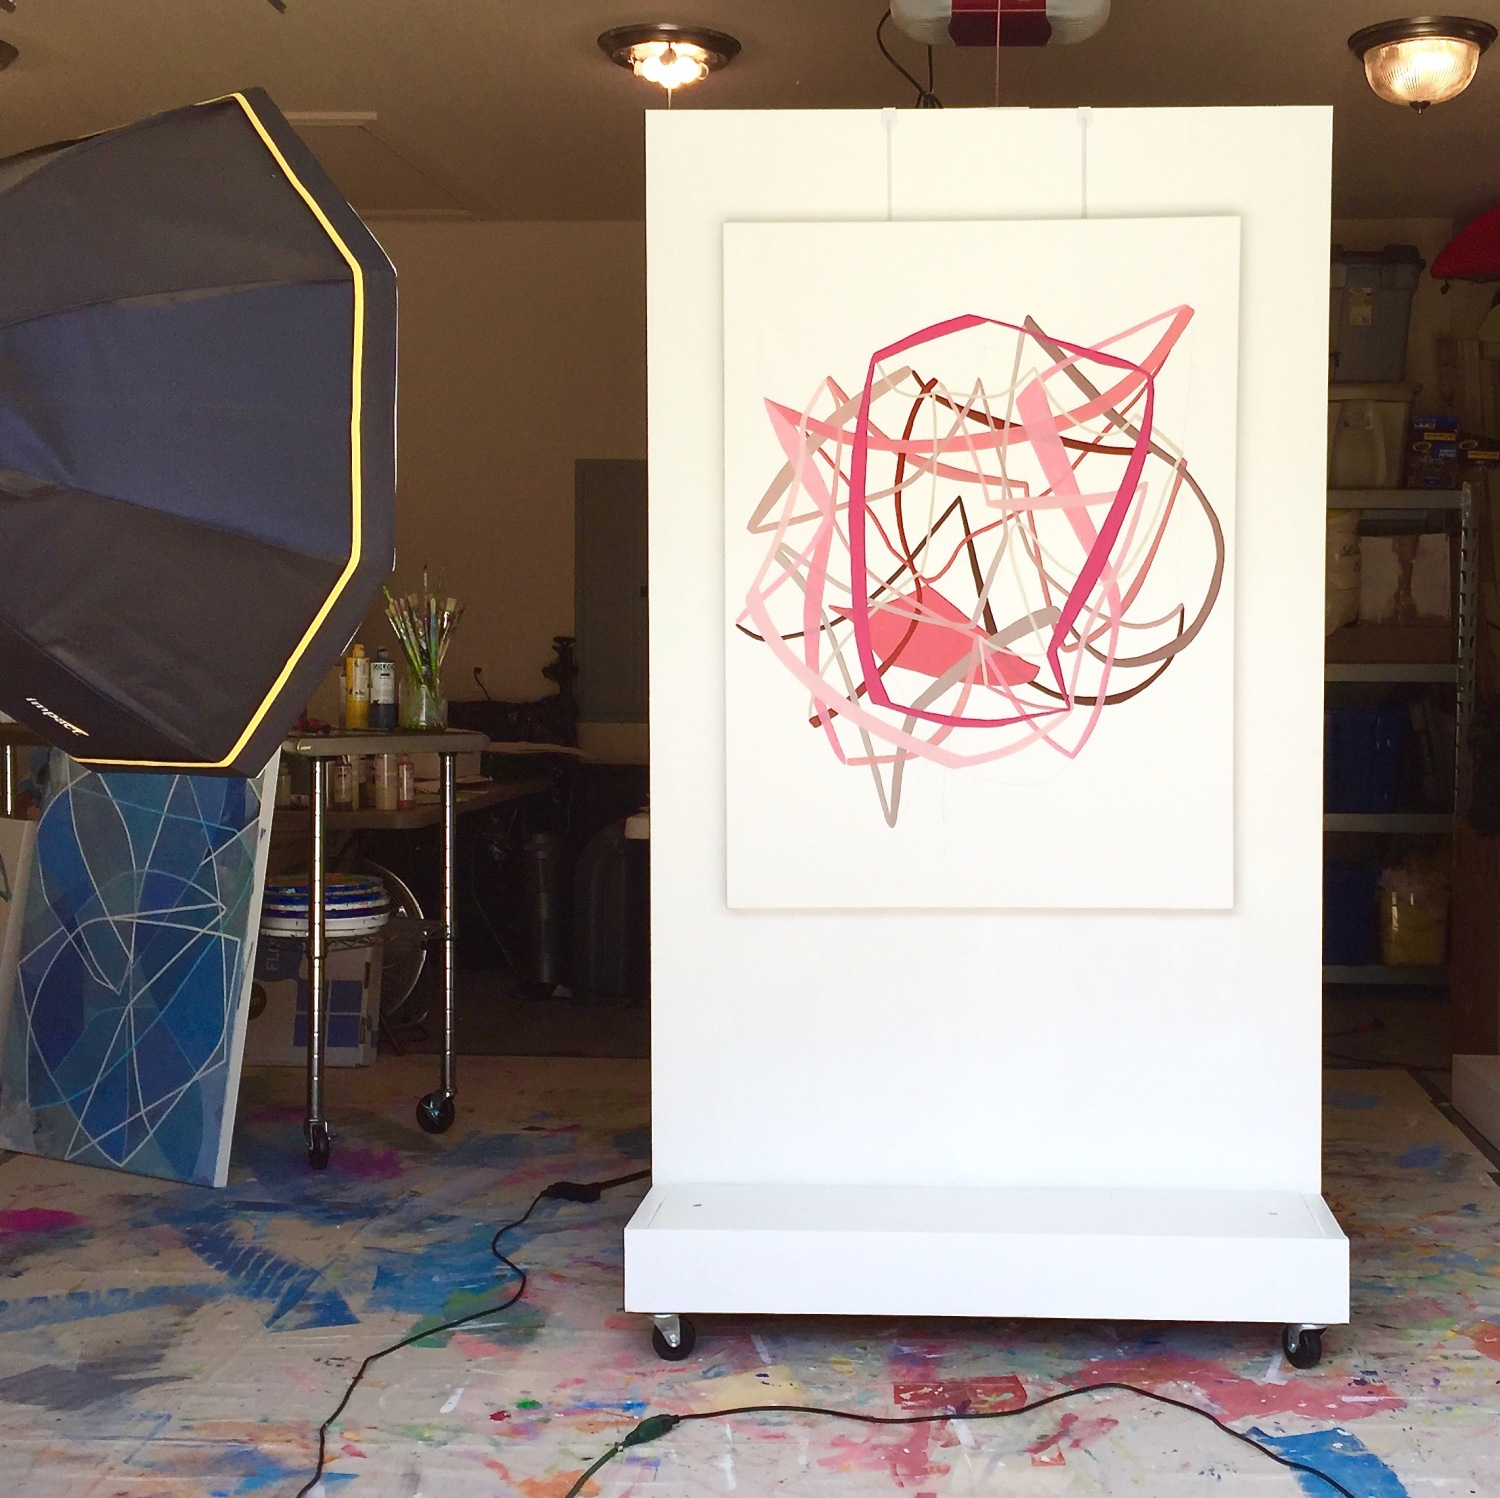 heidi-carlsen-rogers-love-knot-heidi-carlsen-rogers-studio-abstract-painting